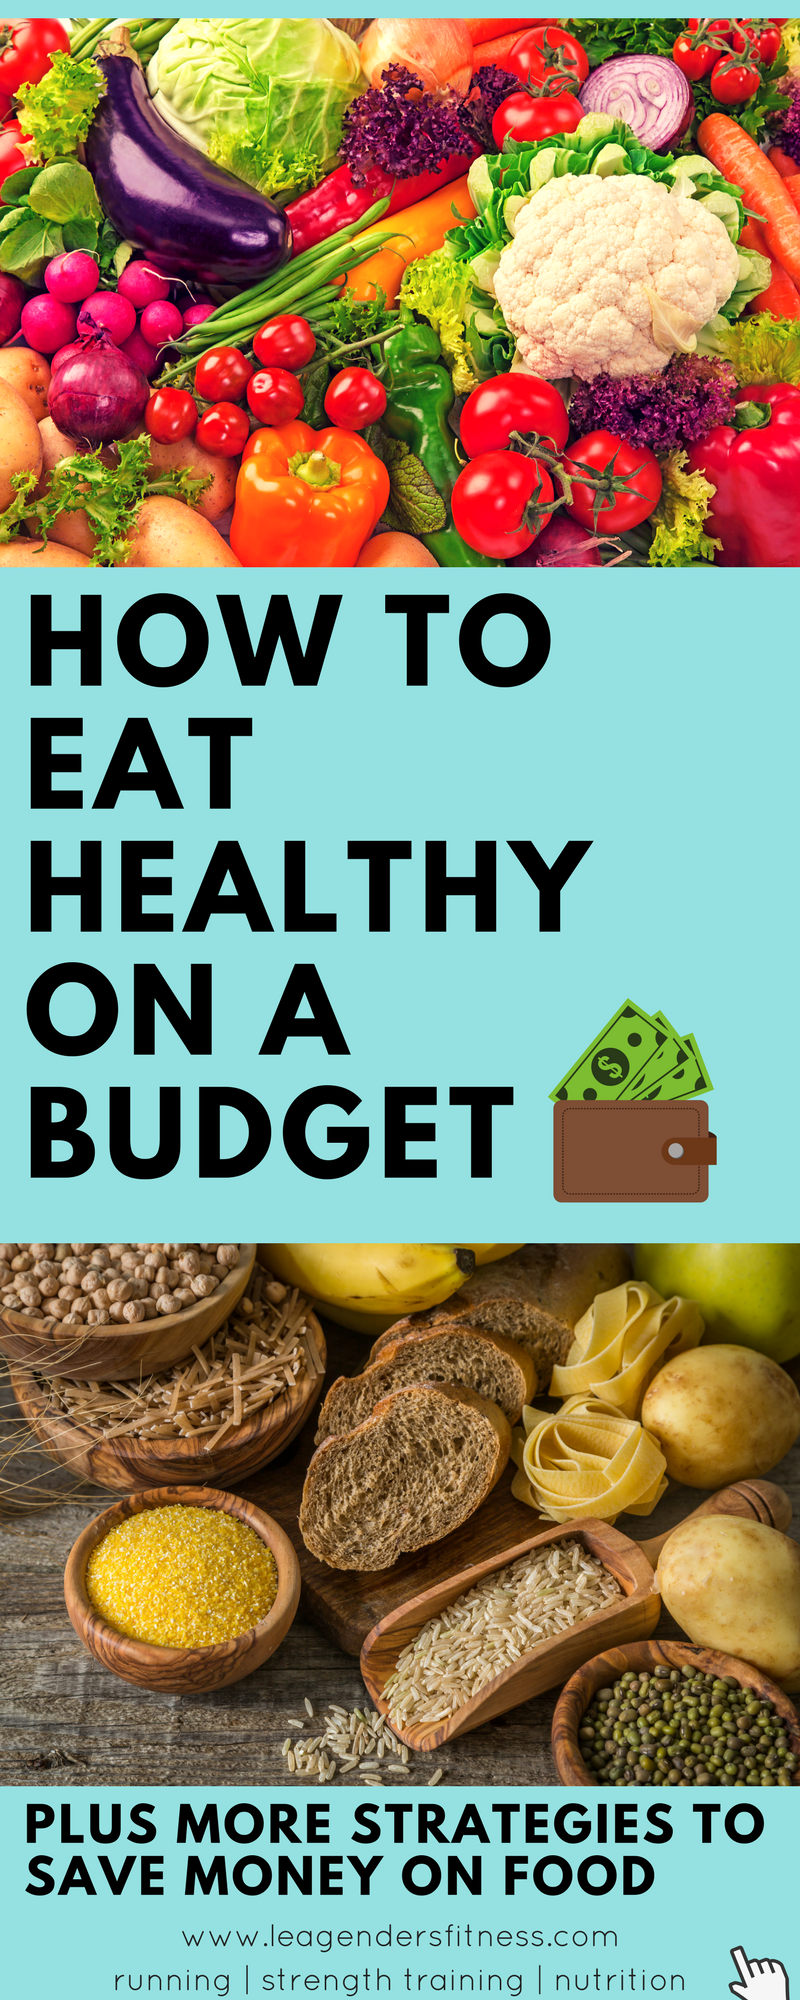 How to eat healthy on a budget - save to Pinterest for later.